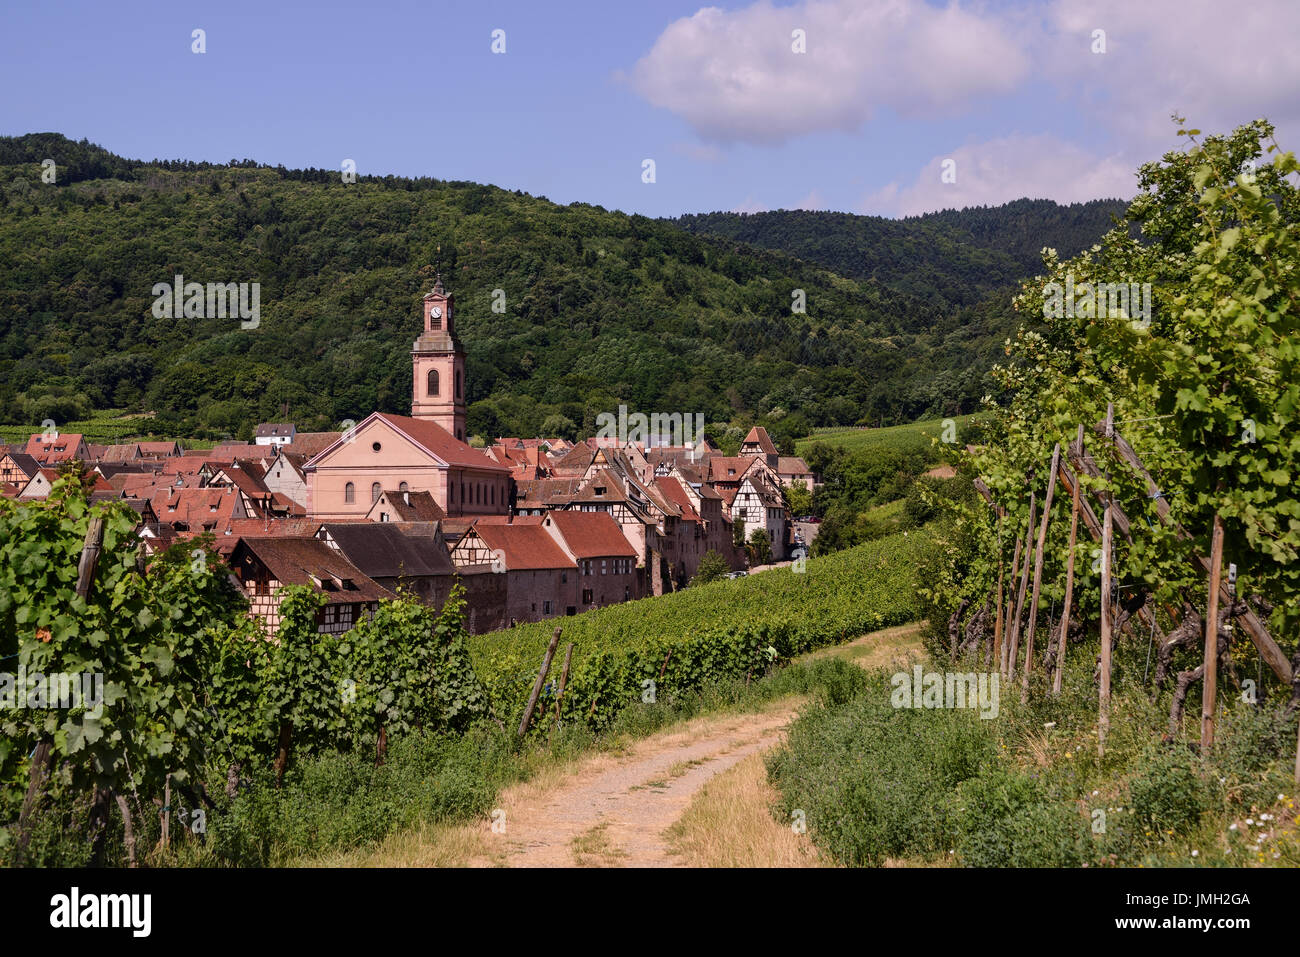 Wine yards around Riquewihr. One of many medieval towns in Alsace, France. - Stock Image